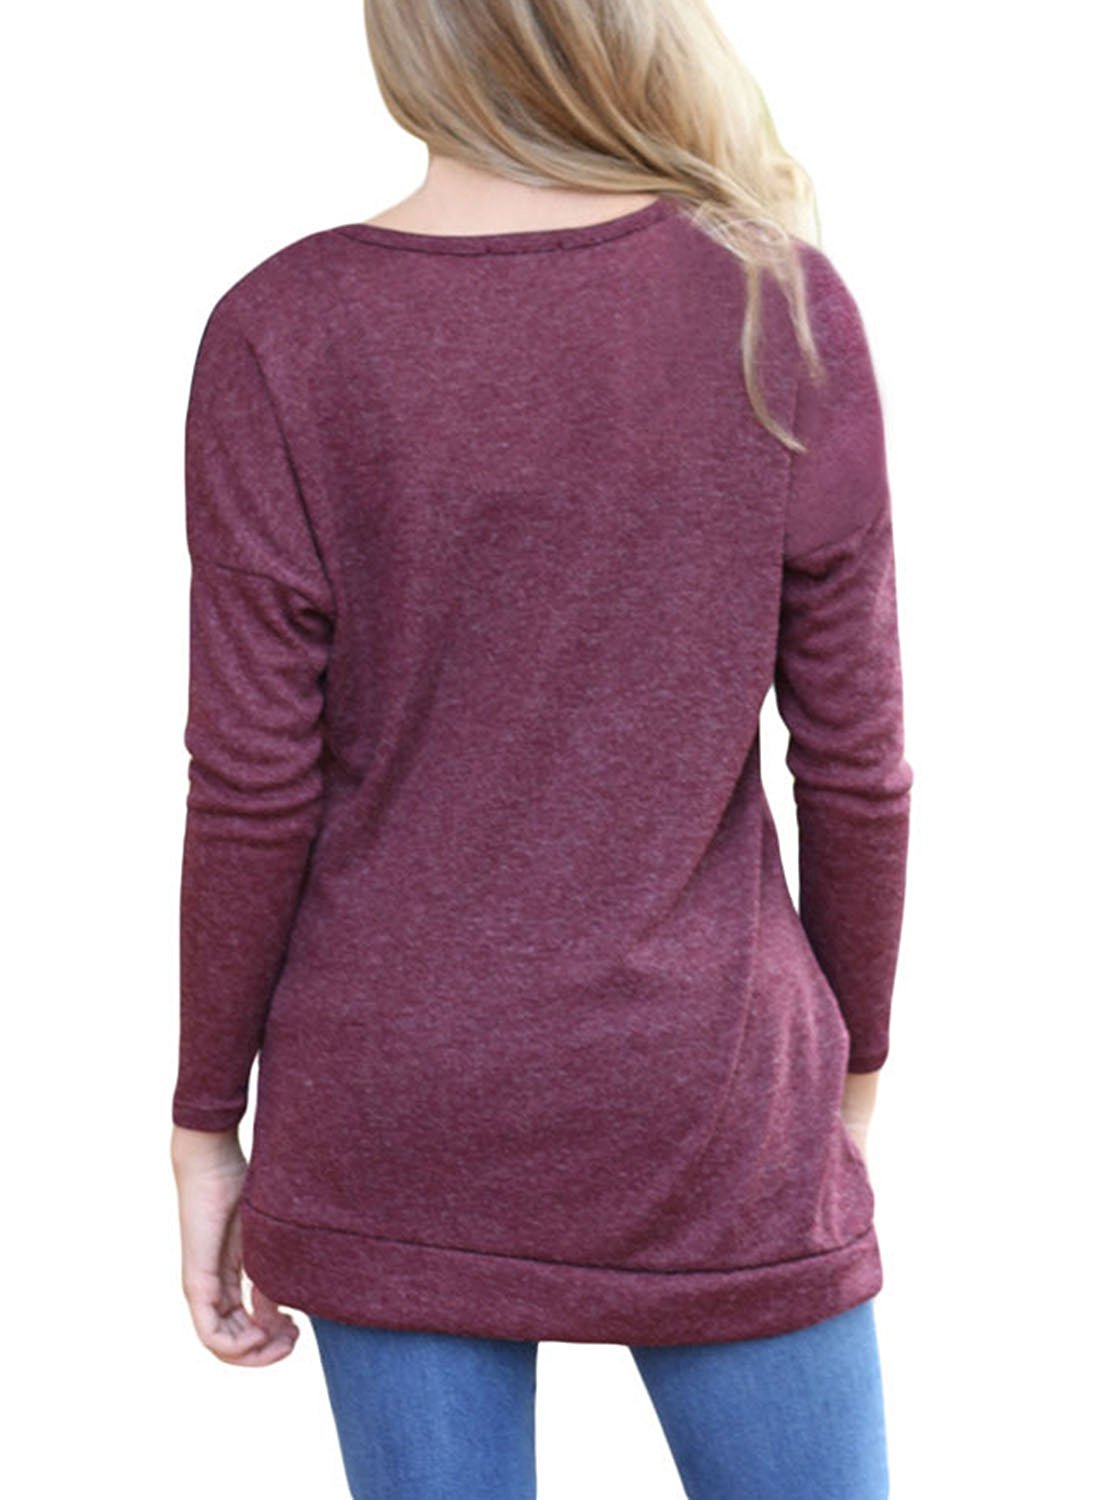 OURS Women's Casual Long Sleeve Round Neck Sweater (L, Wine Red) by OURS (Image #2)